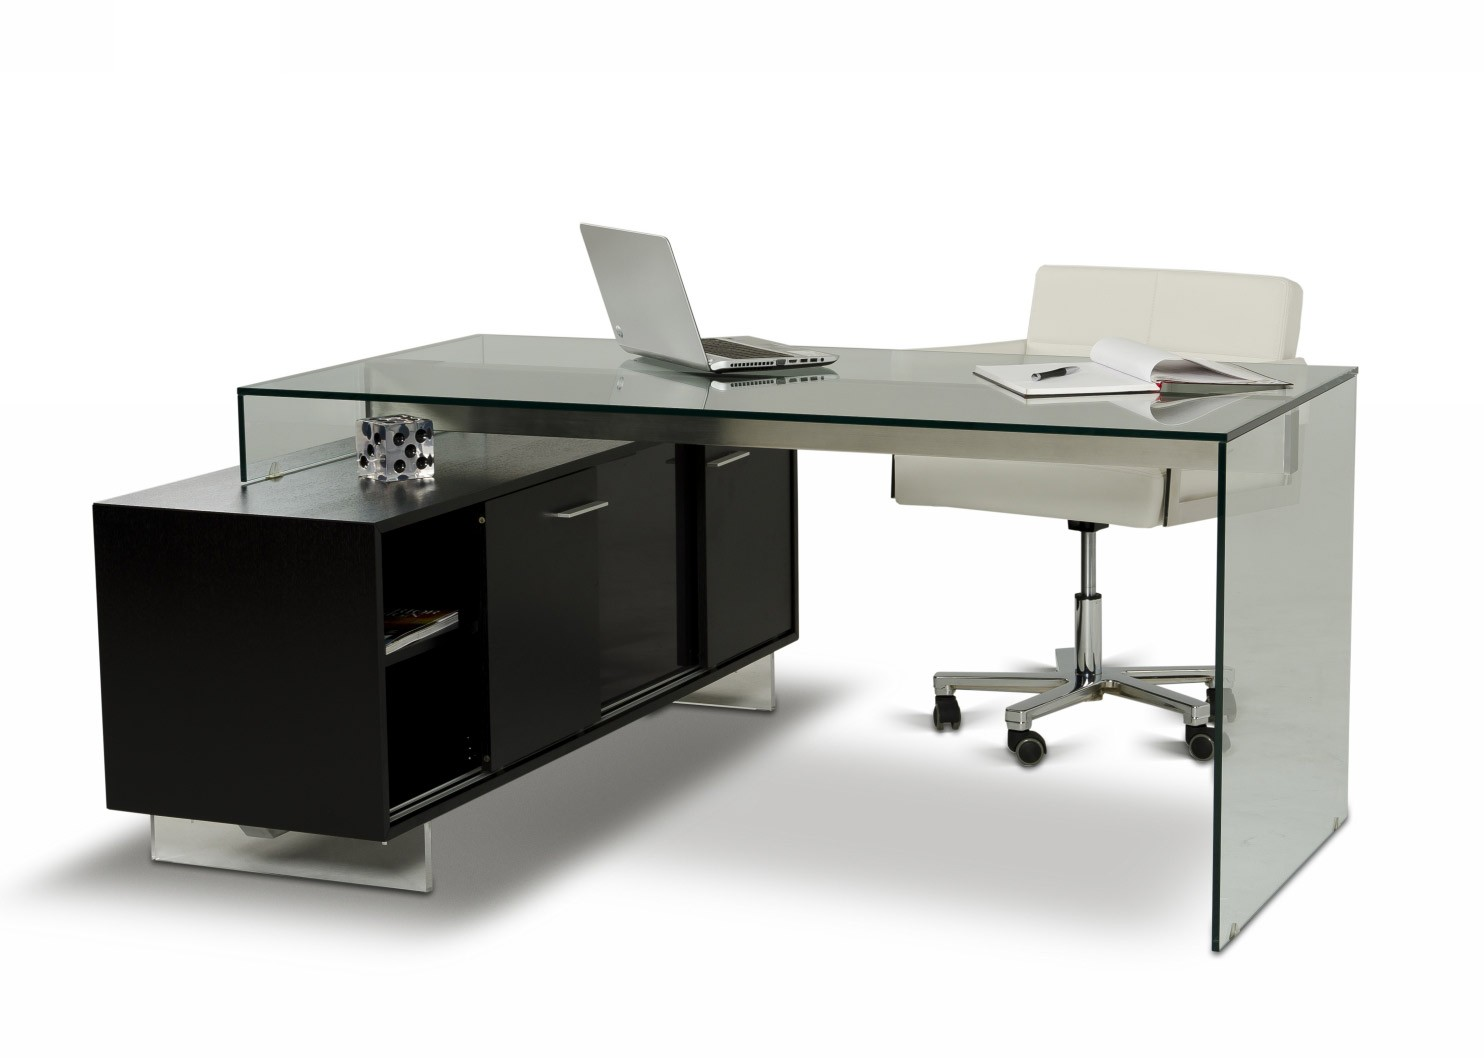 Amazing Office Desk Modern With Enchanting Desk Office For Home Interior Remodel Ideas With Desk Office